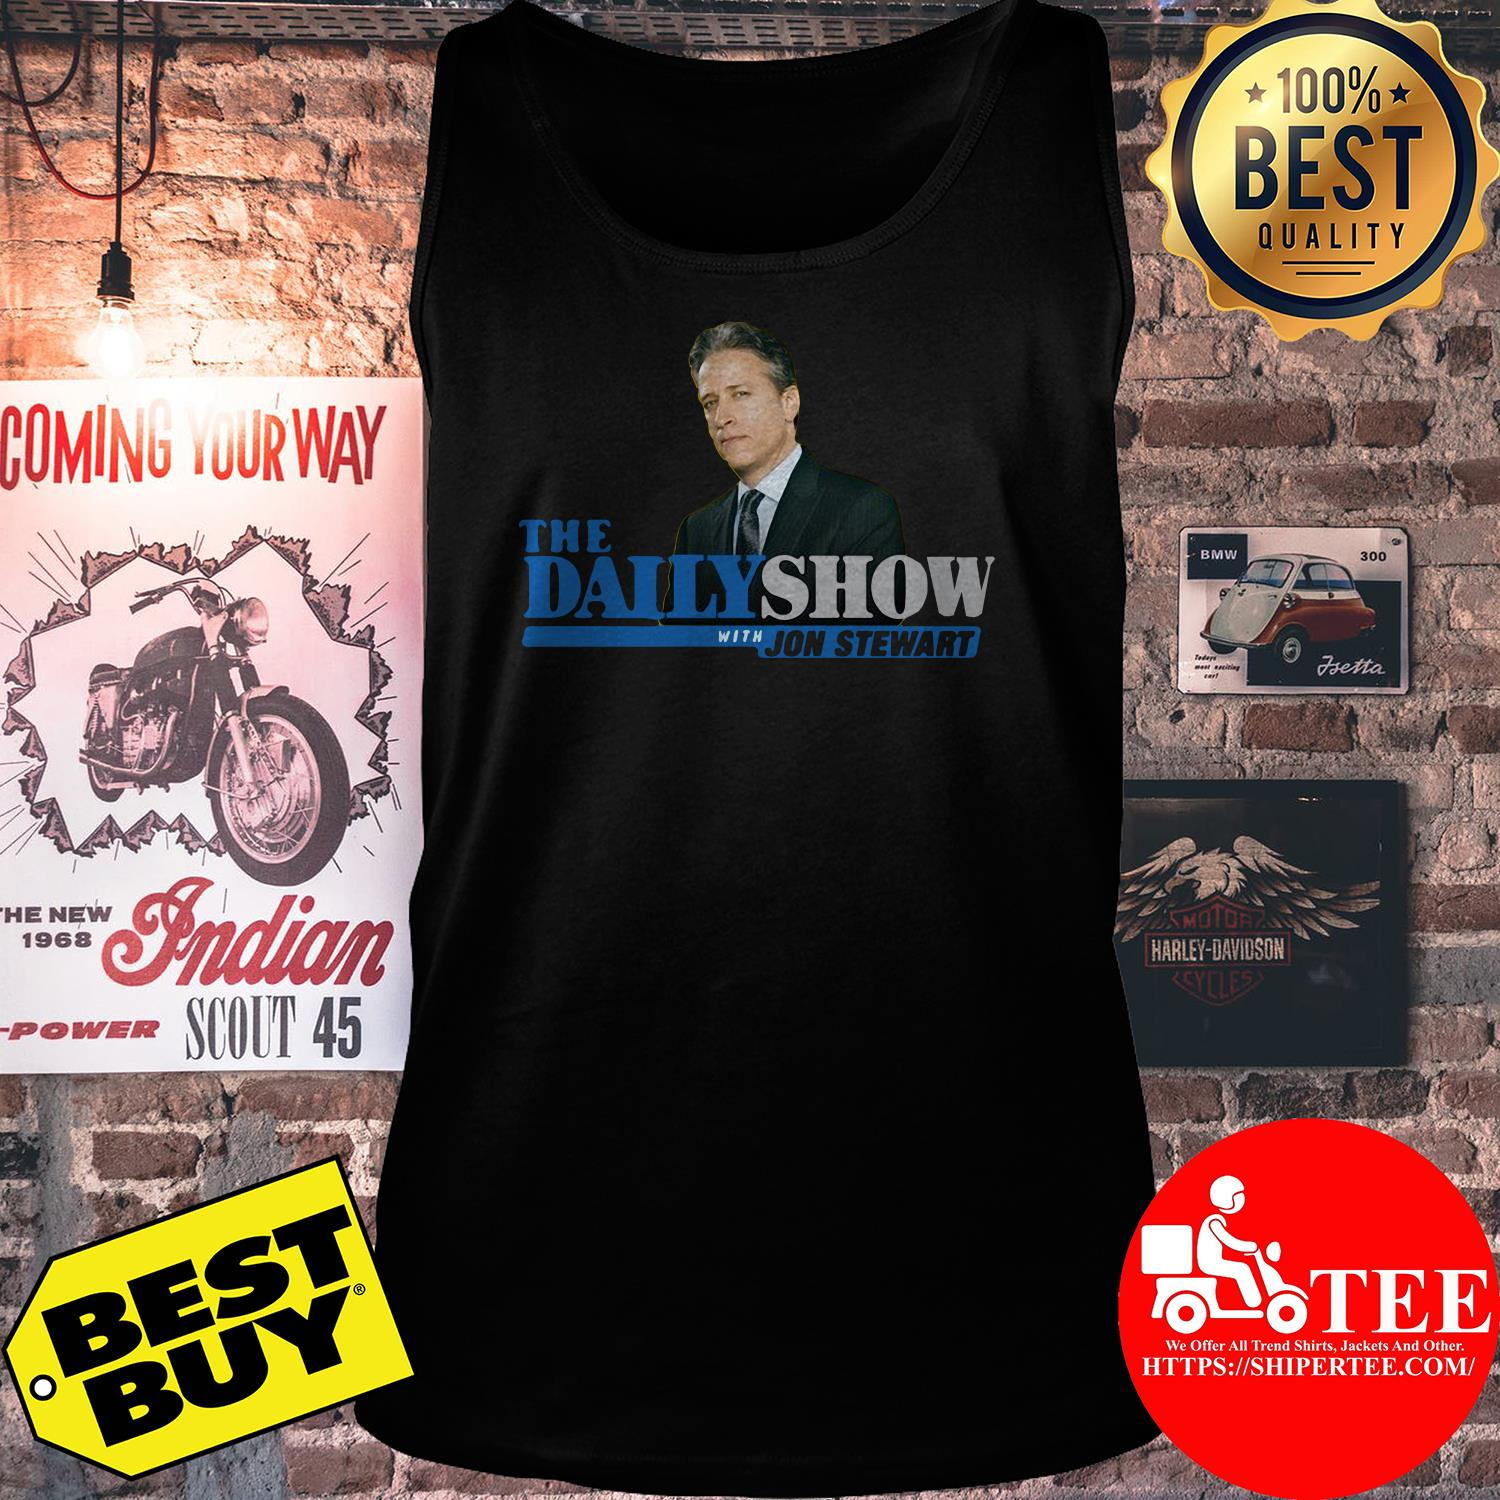 The Daily Show With Jon Stewart tank top